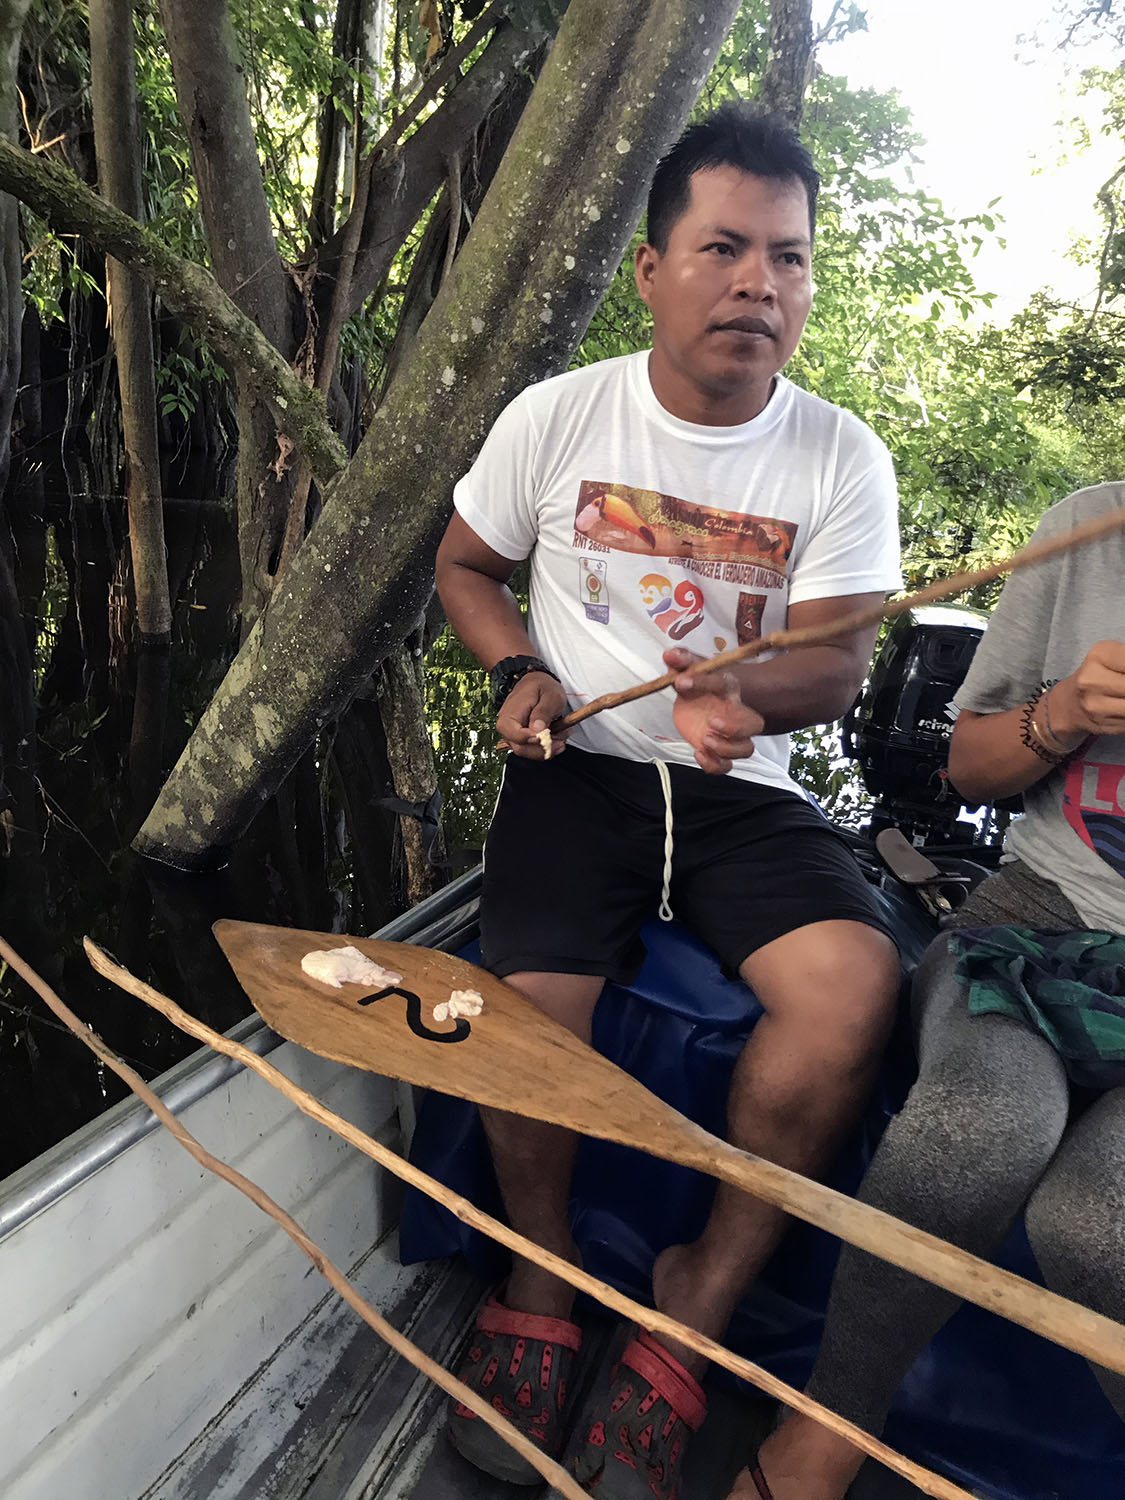 Local guide using fresh fish to bait traditional fishing poles to fish for piraña